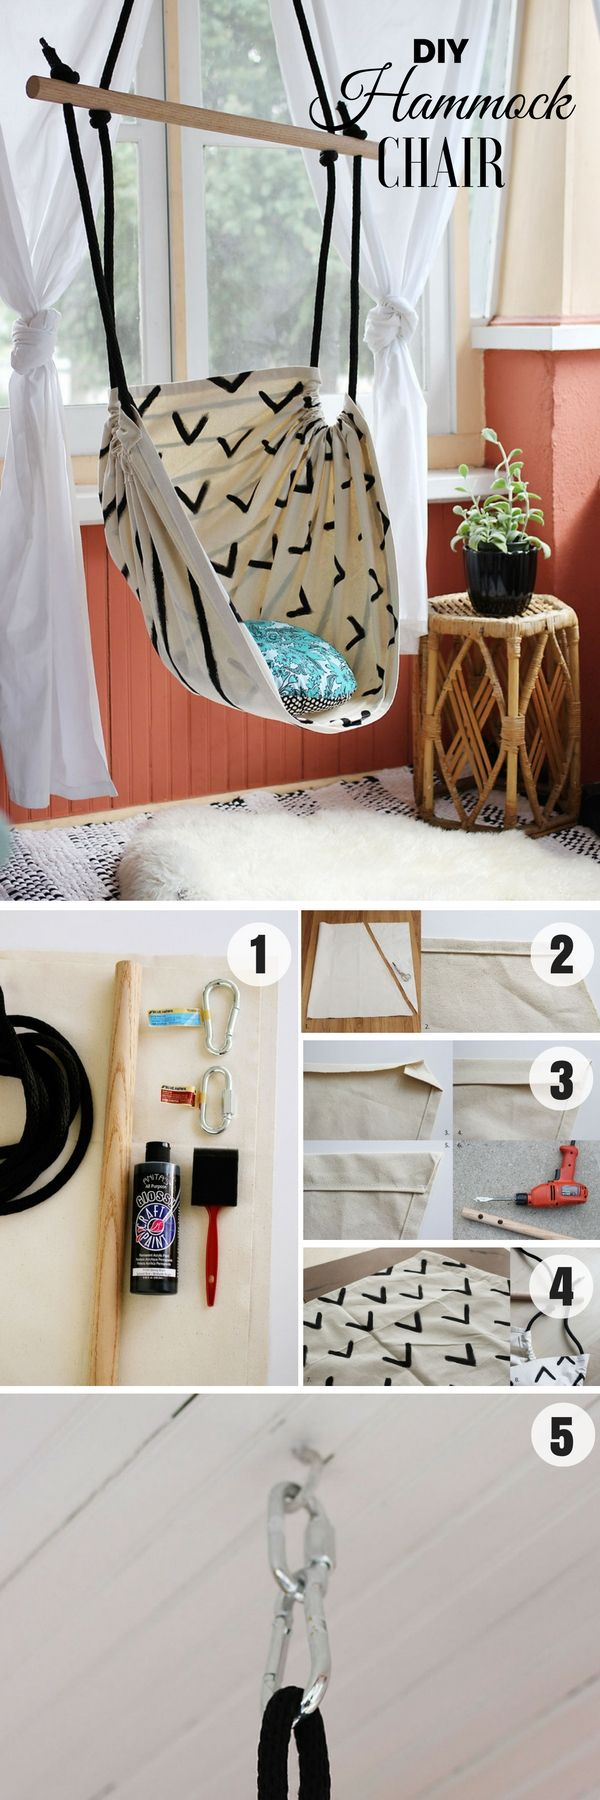 Best 25 Bedroom hammock ideas on Pinterest  Hammock chair for bedroom Hammock in bedroom and